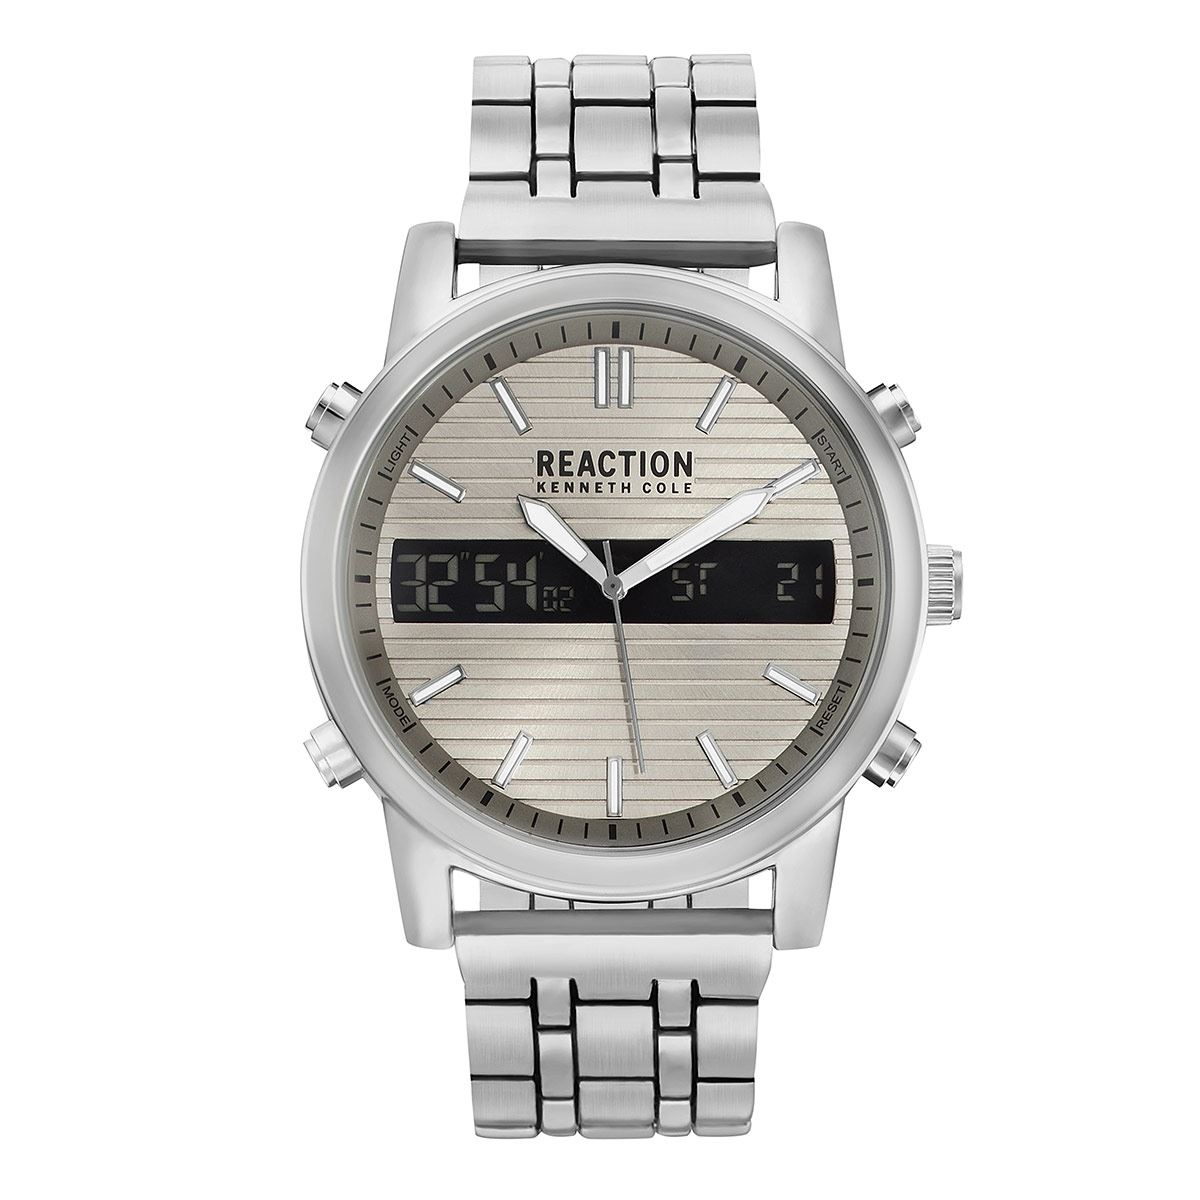 Reloj Kenneth Cole Reaction RK50549008 Cab Para Caballero